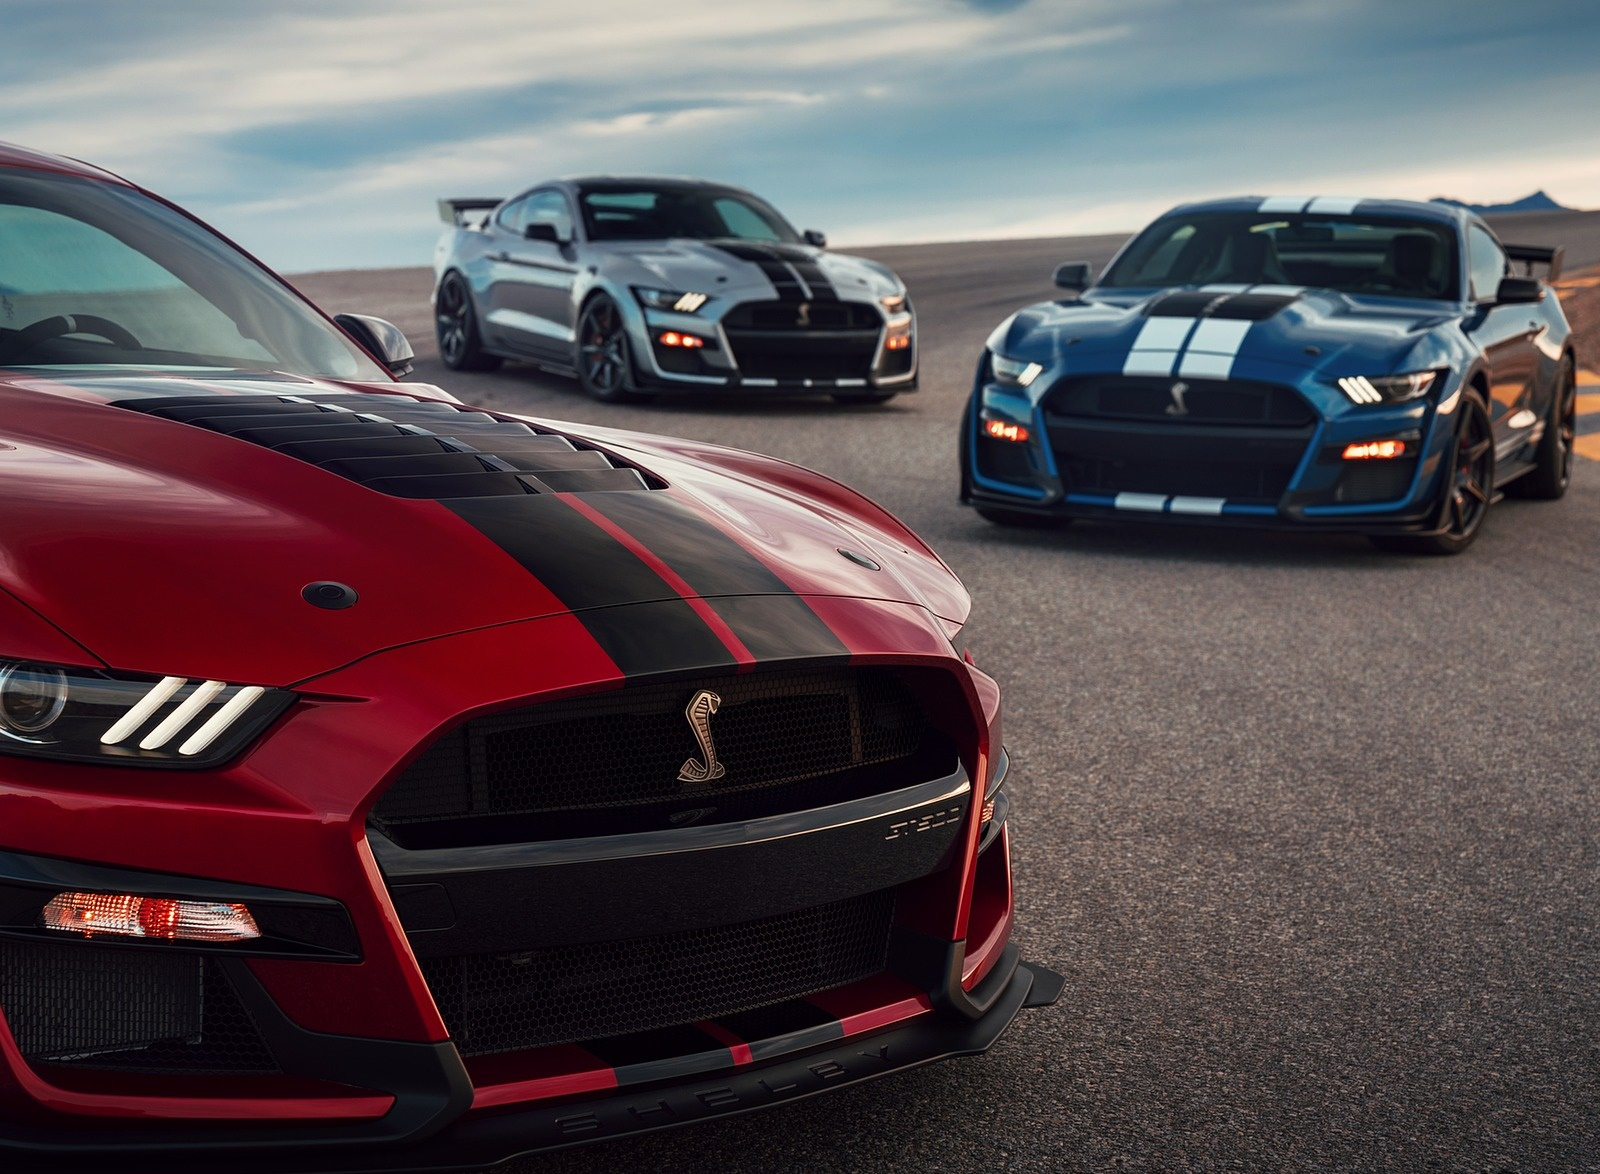 2020 Ford Mustang Shelby GT500 Grill Wallpapers (15)